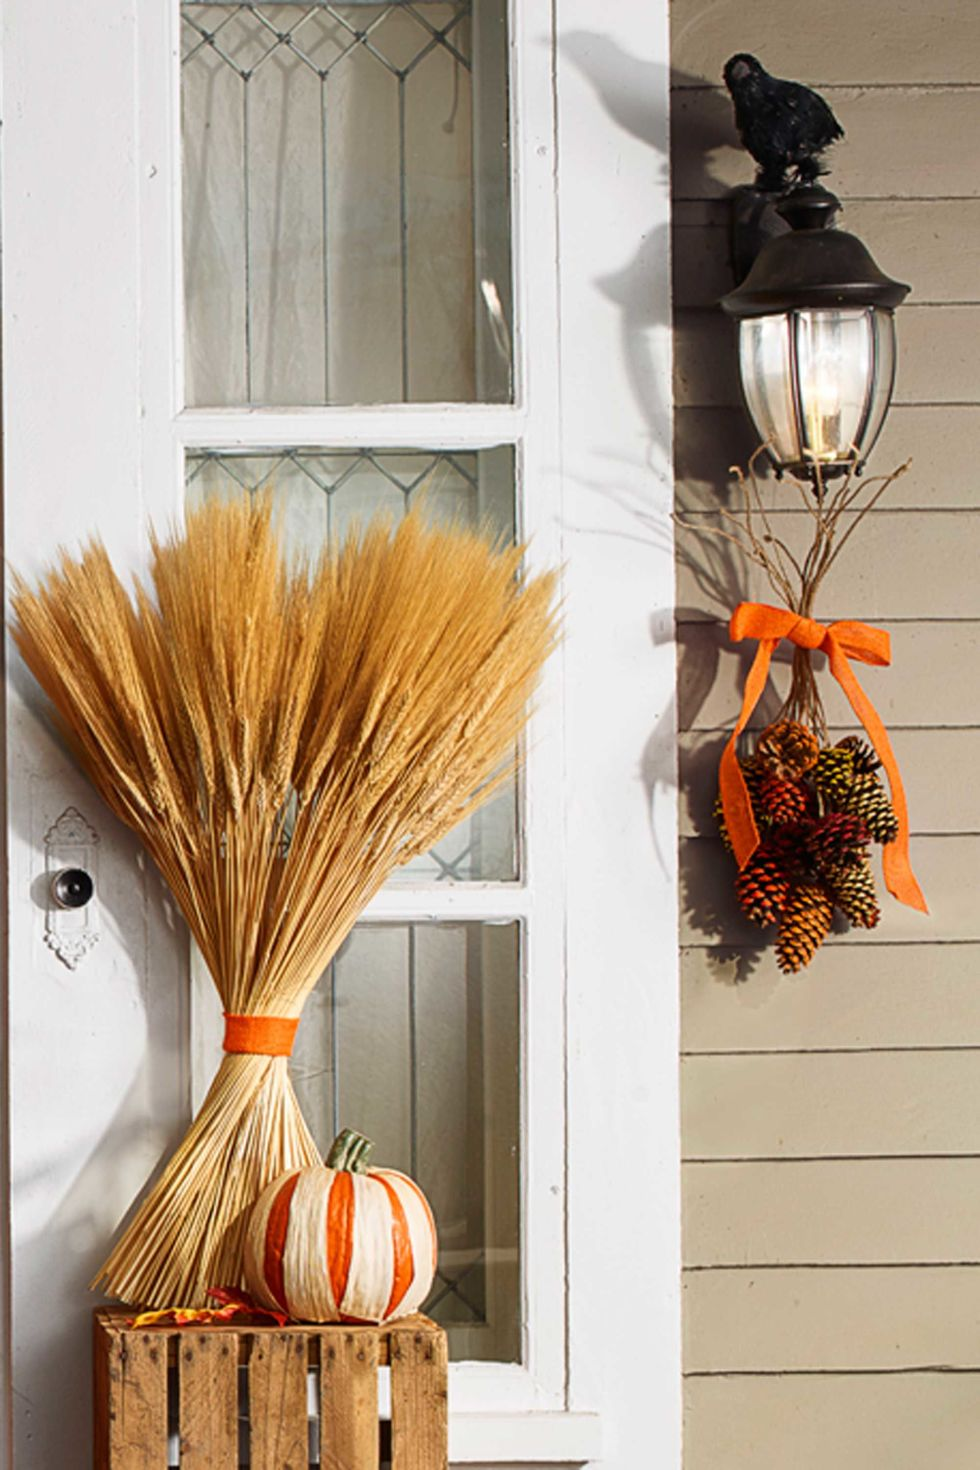 40 easy diy halloween decoration ideas homemade halloween decor projects - Easy Halloween Decoration Ideas